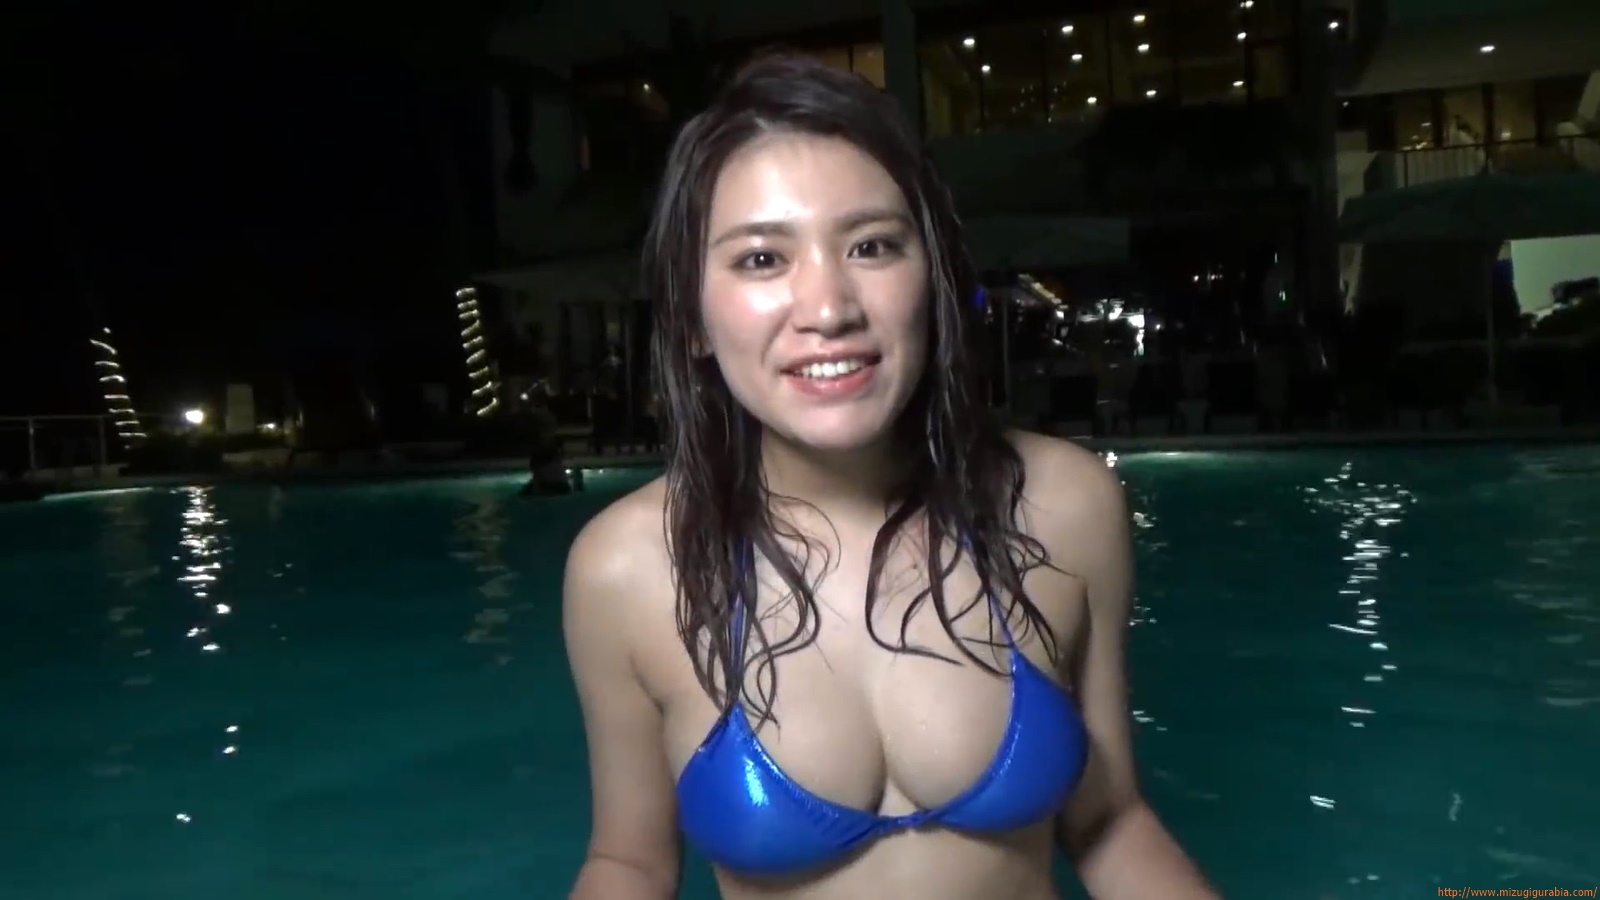 Shes a sunny bodice who continues to lead the way in gravure088